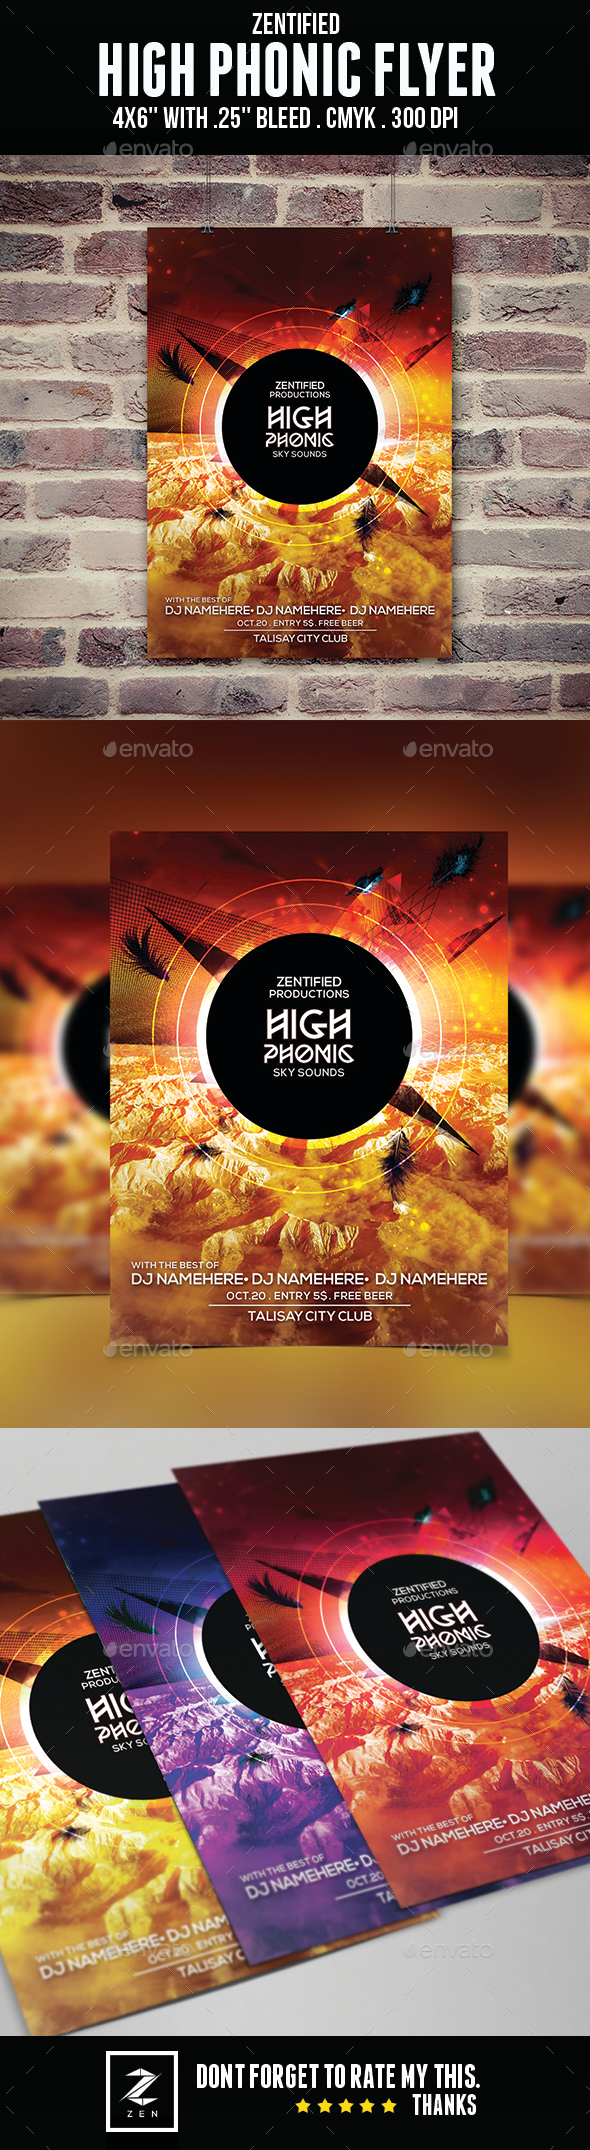 High Phonic Flyer - Clubs & Parties Events